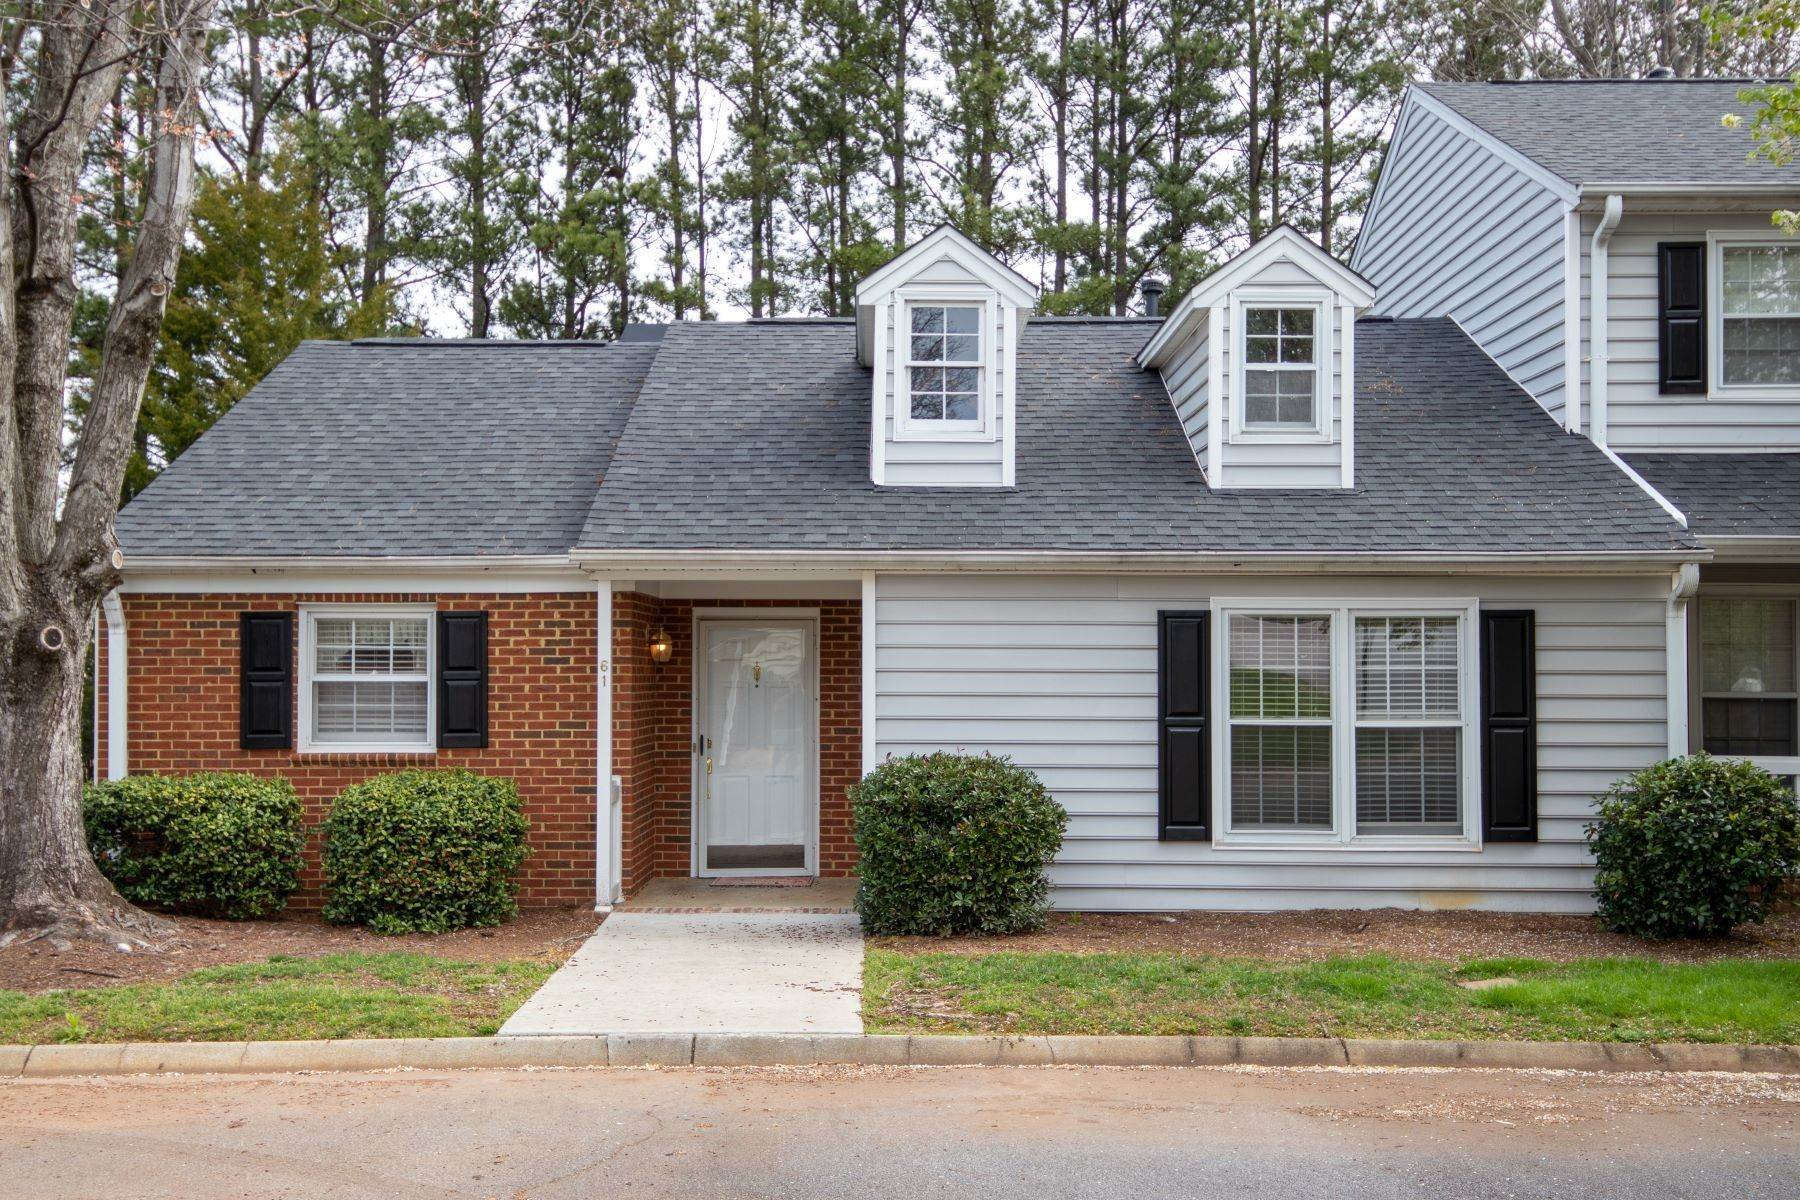 Condominiums for Sale at 40 Wood Pointe Drive Unit 61, Greenville, SC 29615 40 Wood Pointe Drive, Unit 61, Greenville, SC 29615